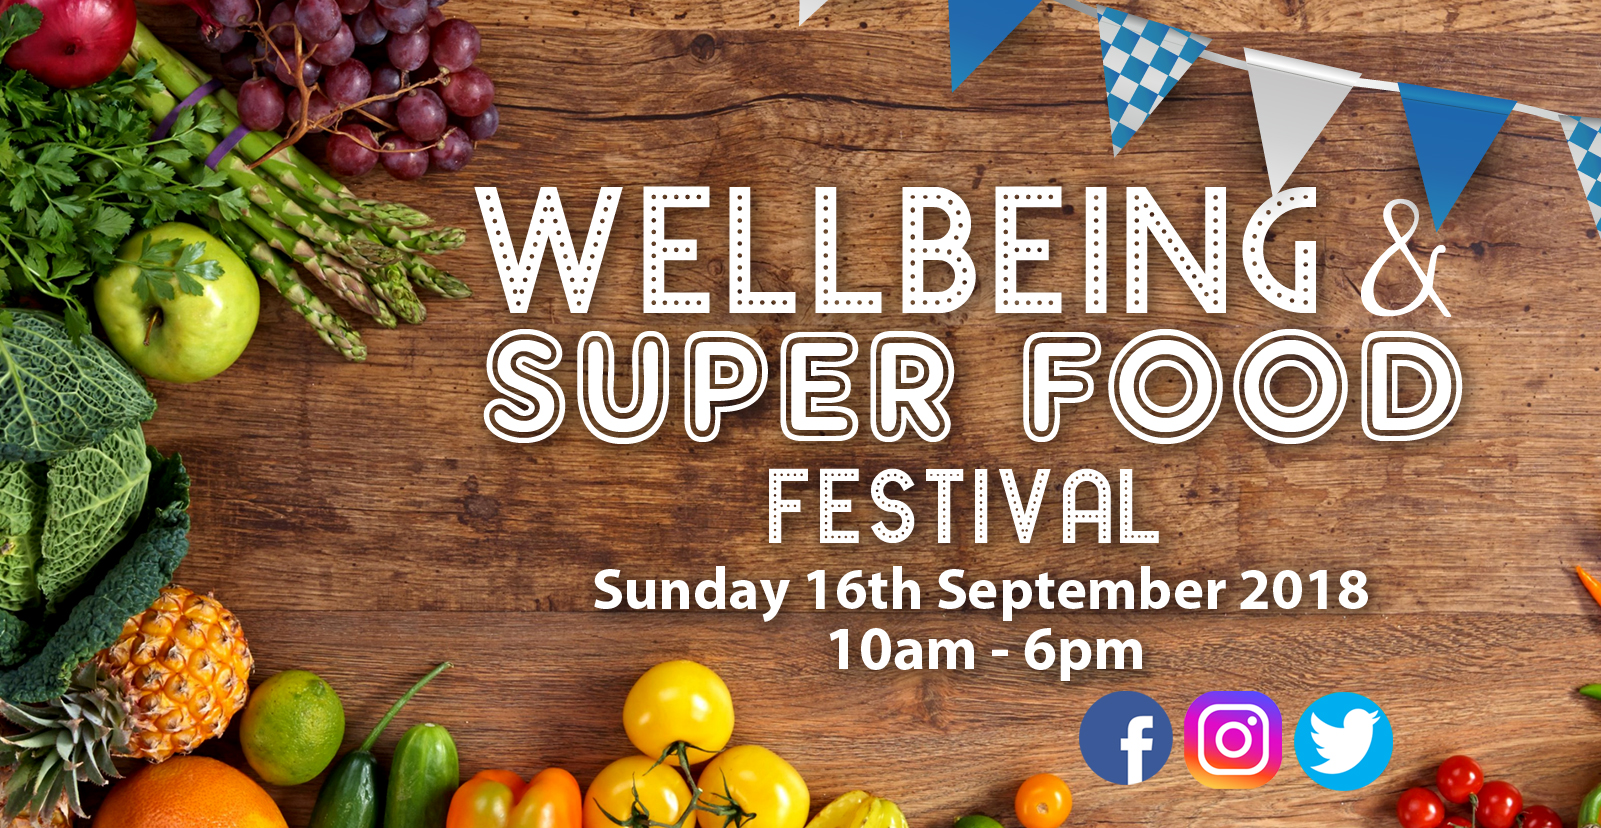 Wellbeing & Superfood FB Banner